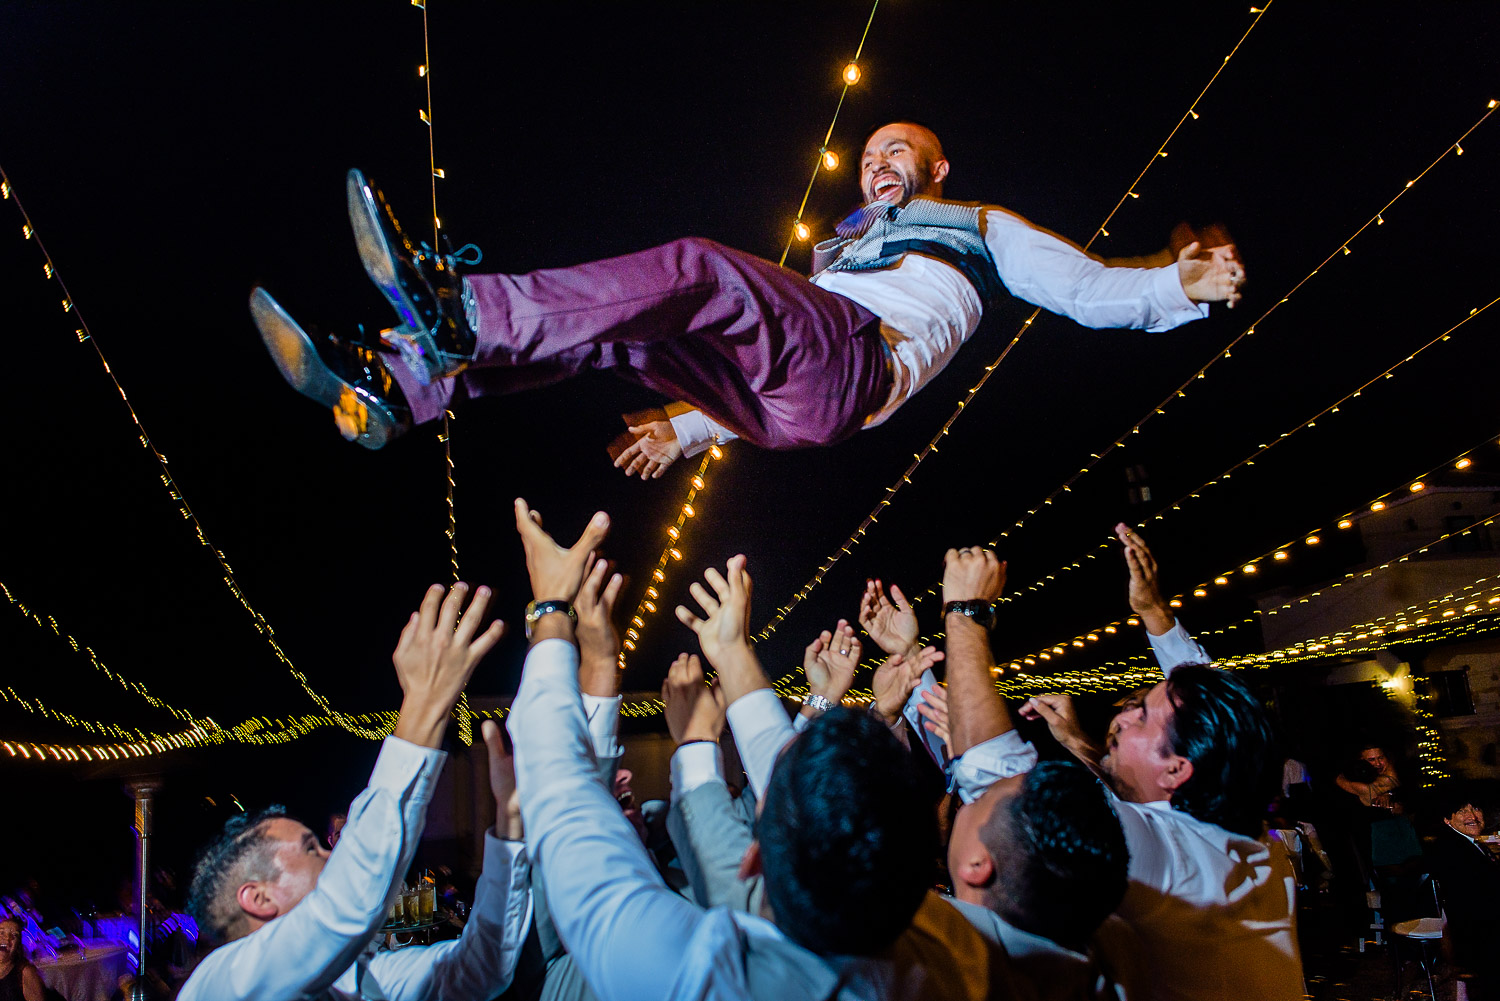 This wedding had the most incredible Mexican dancing and the highest flying groom I have ever seen. Stunning documentary photography from GVphotographer.